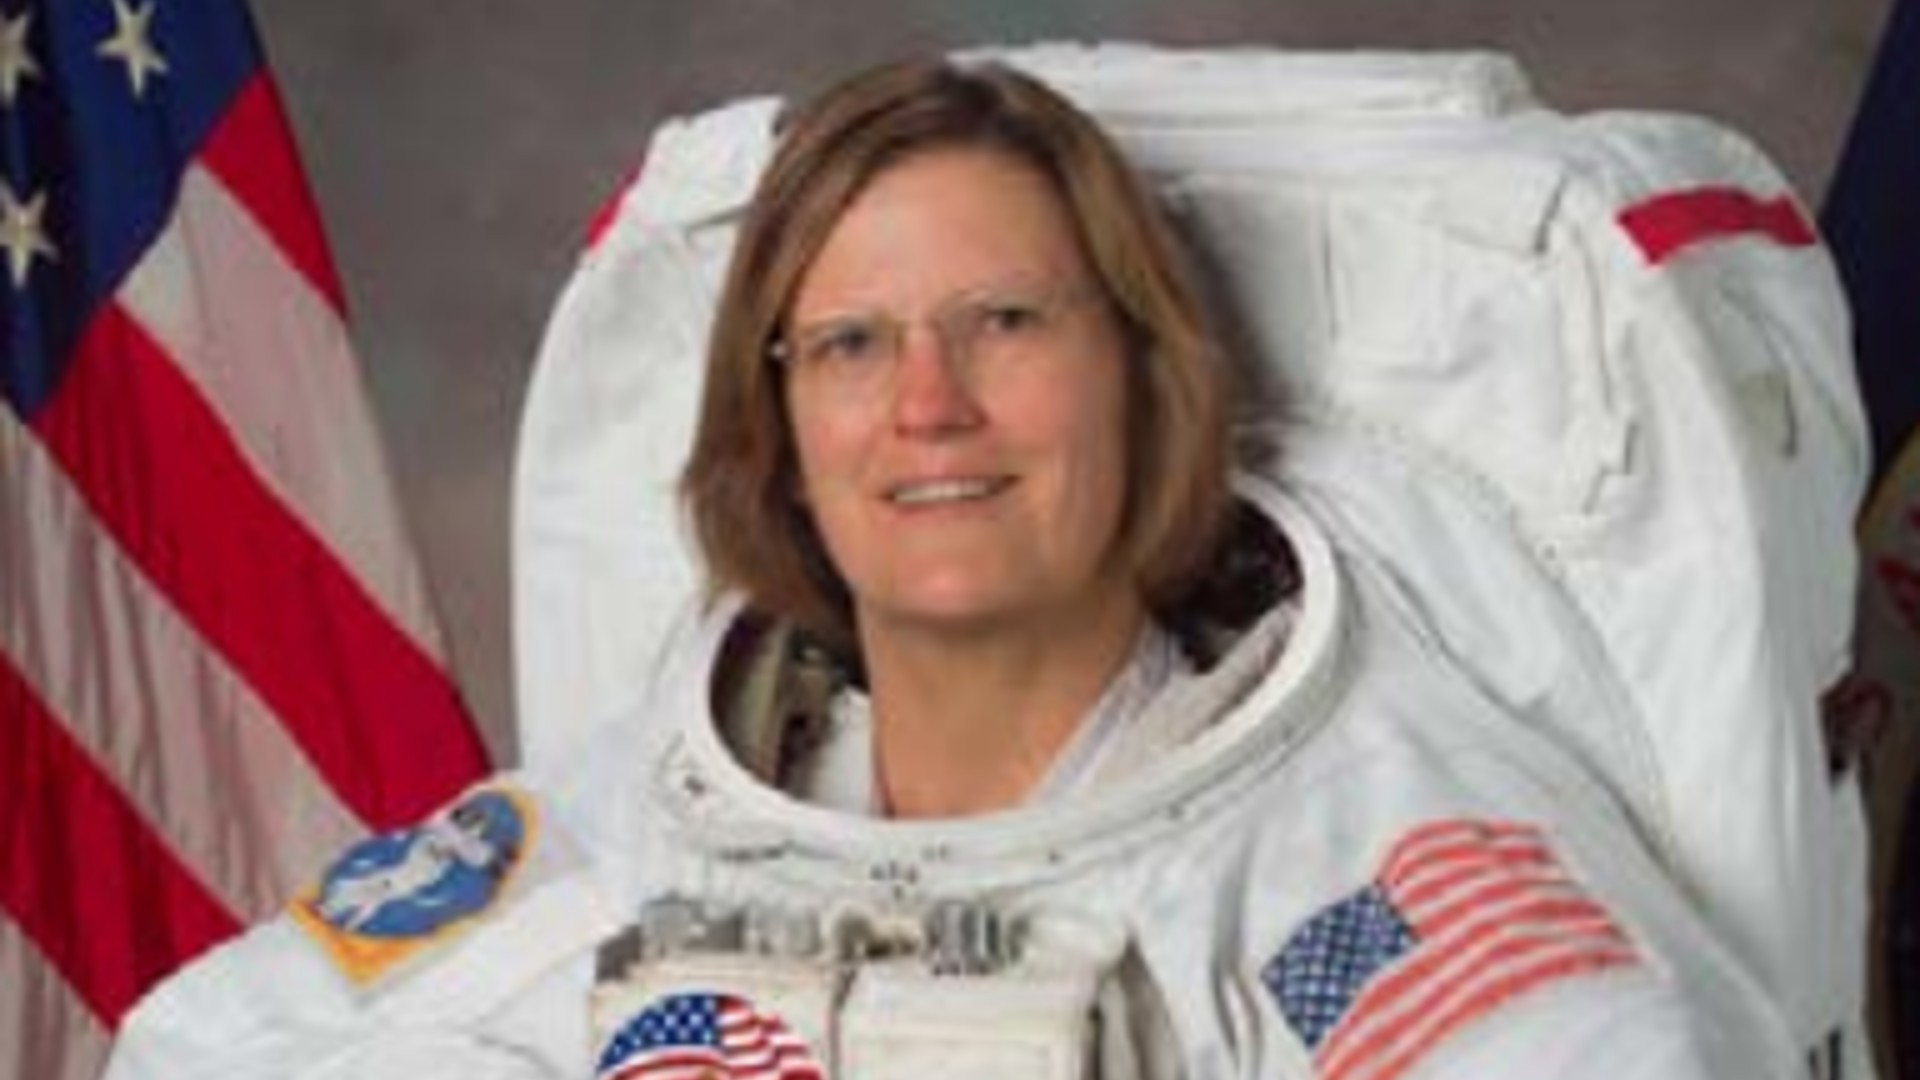 Kathy Sullivan is seen in an image from NASA.